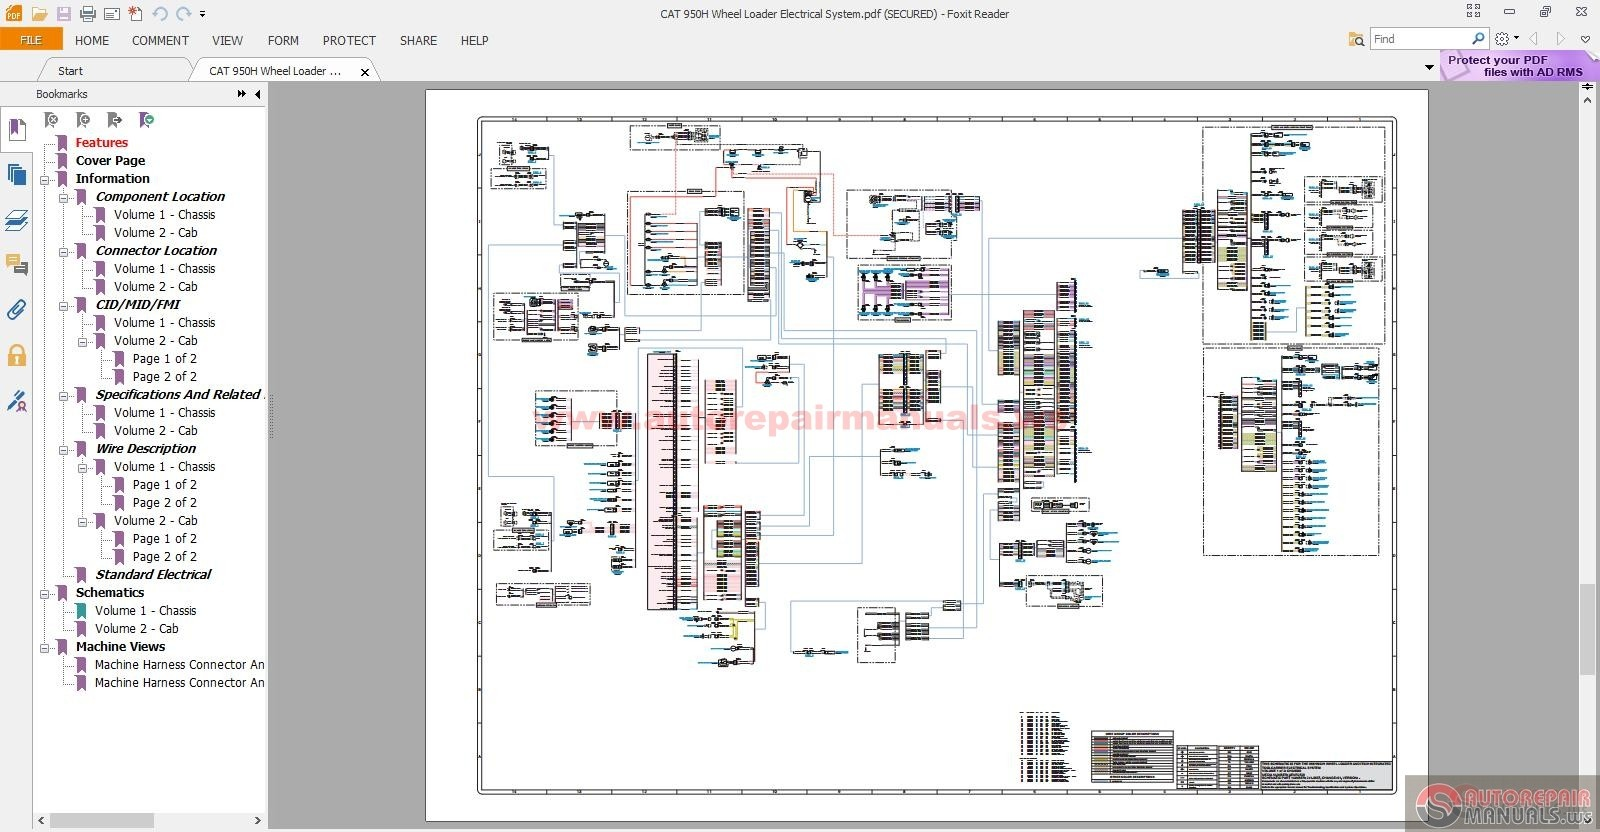 Cat 966 Wiring Diagram Automotive Skid Steer 420d Backhoe Parts Get Free Image About 3 6